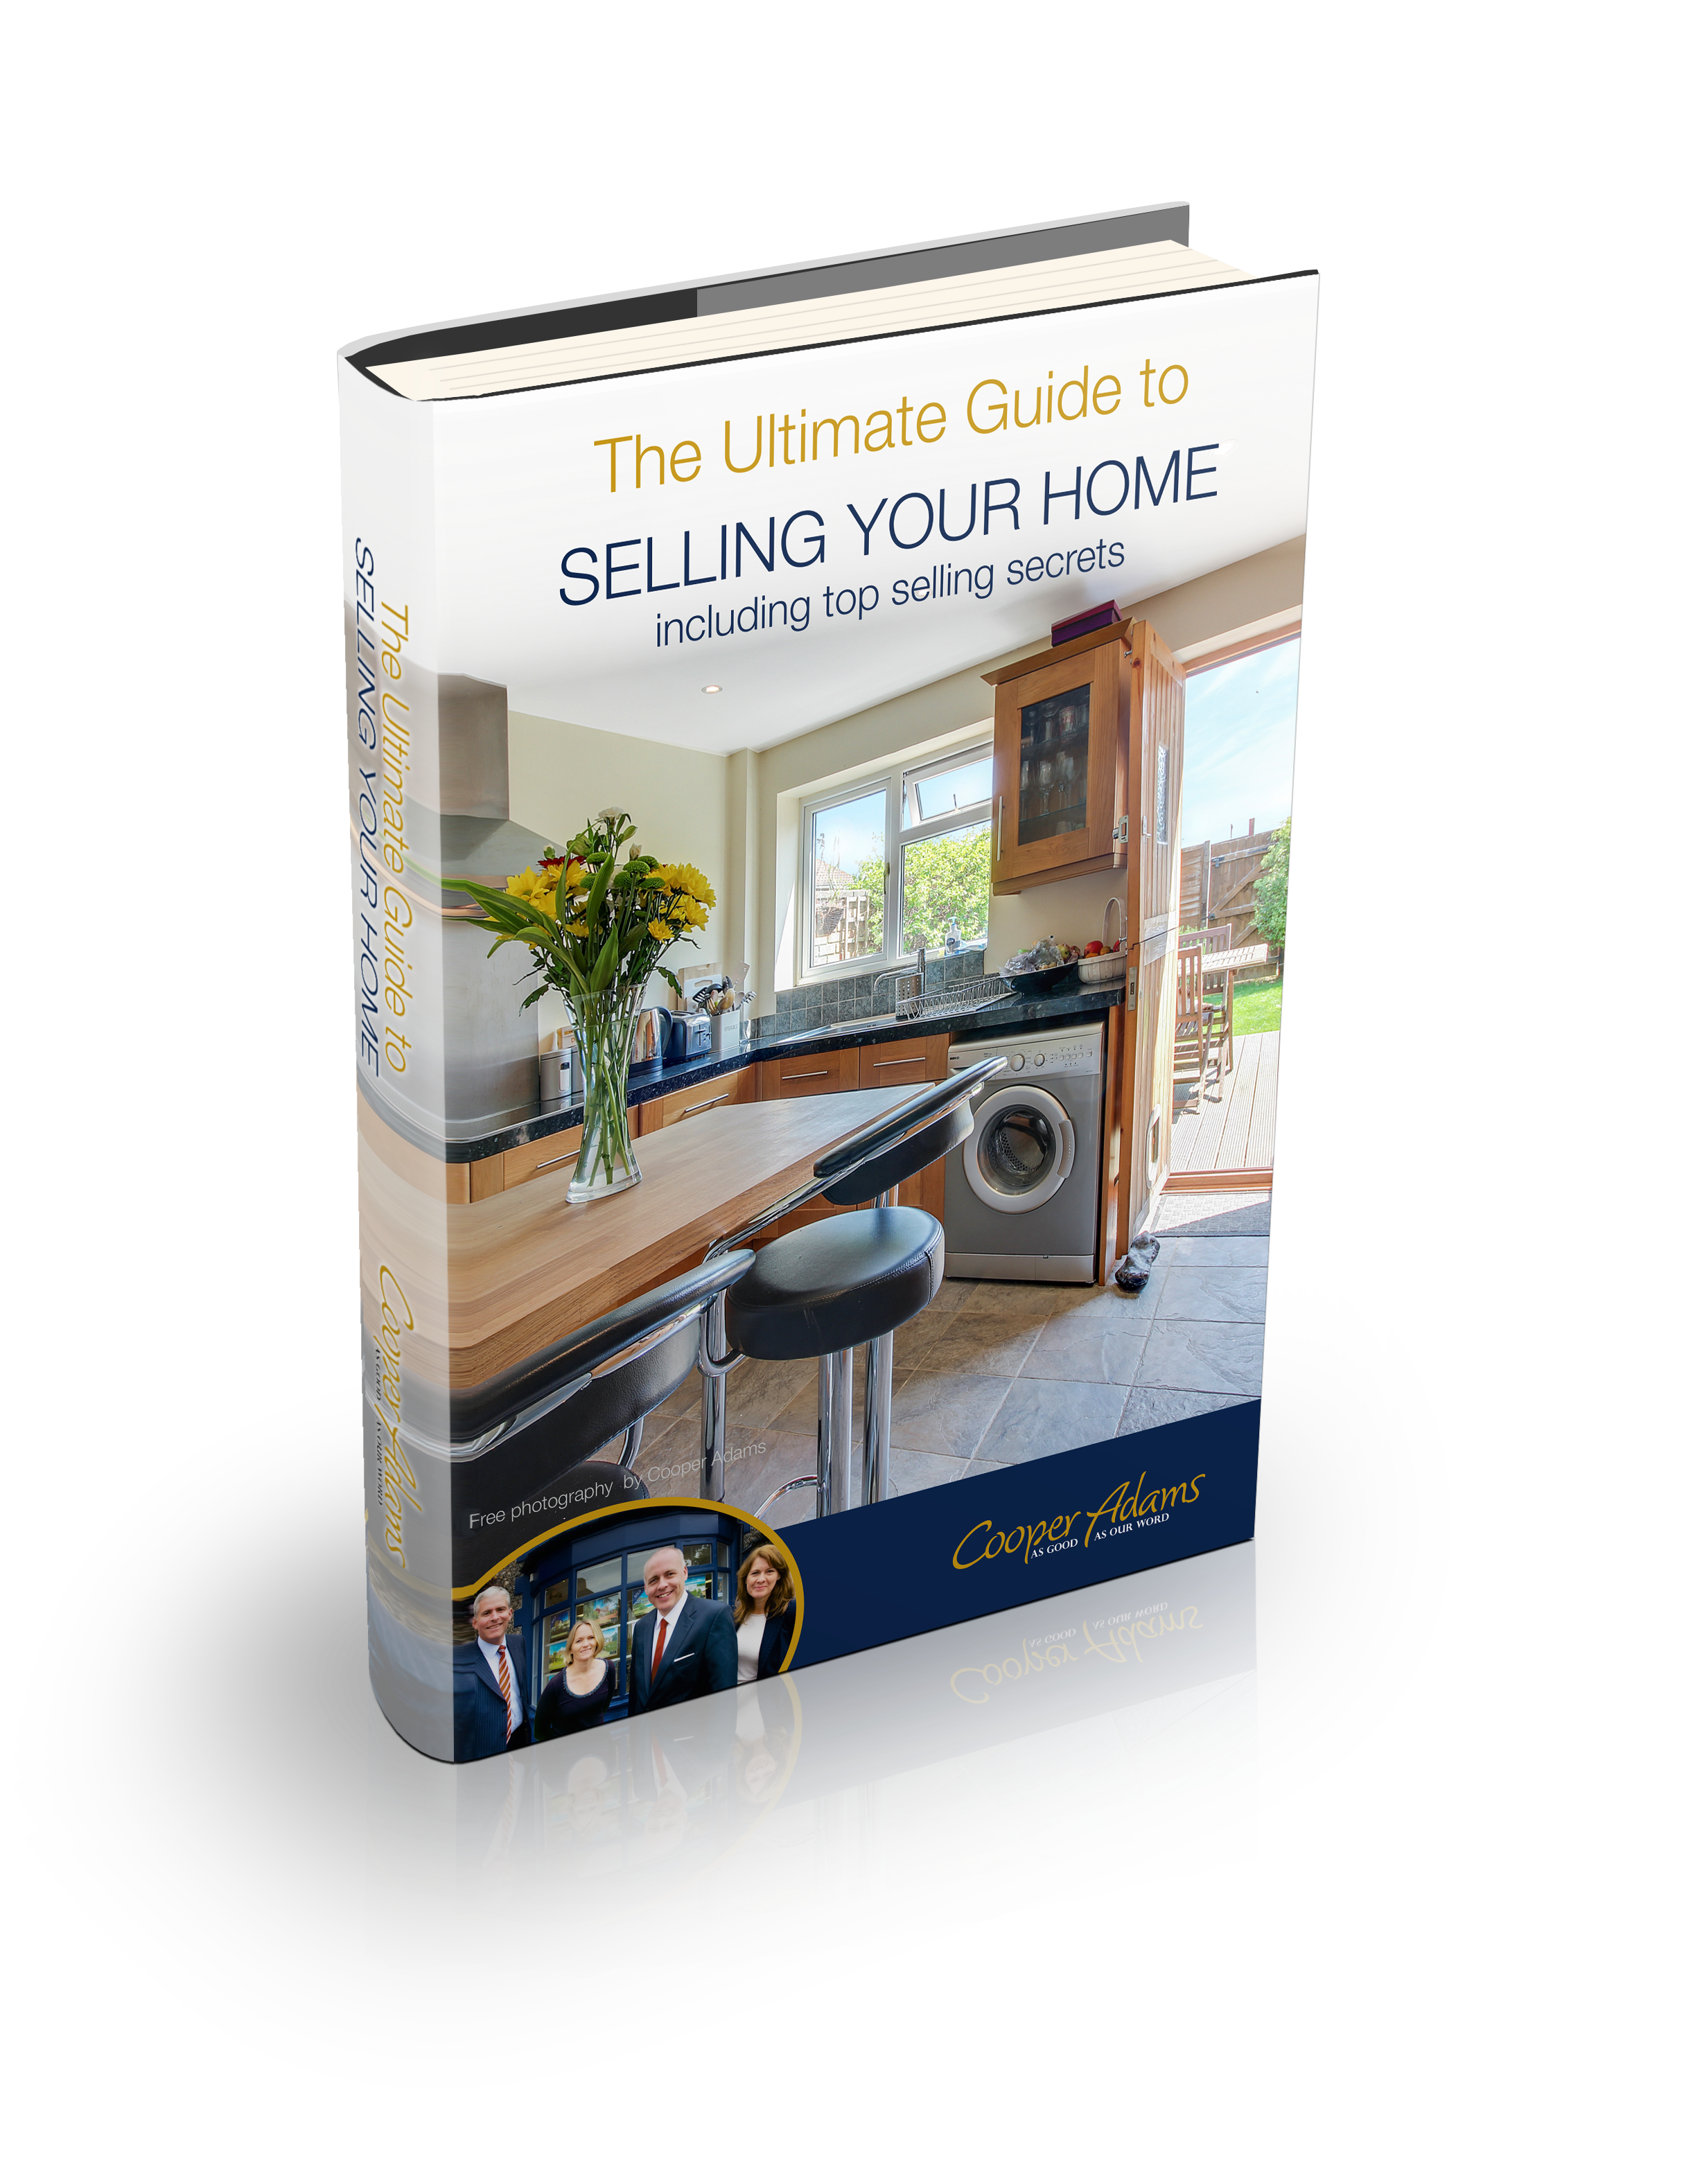 Download your free copy of the ultimate guide to selling your home download your free copy of the ultimate guide to selling your home including top selling secrets download this free cooper adams ebook fandeluxe Images